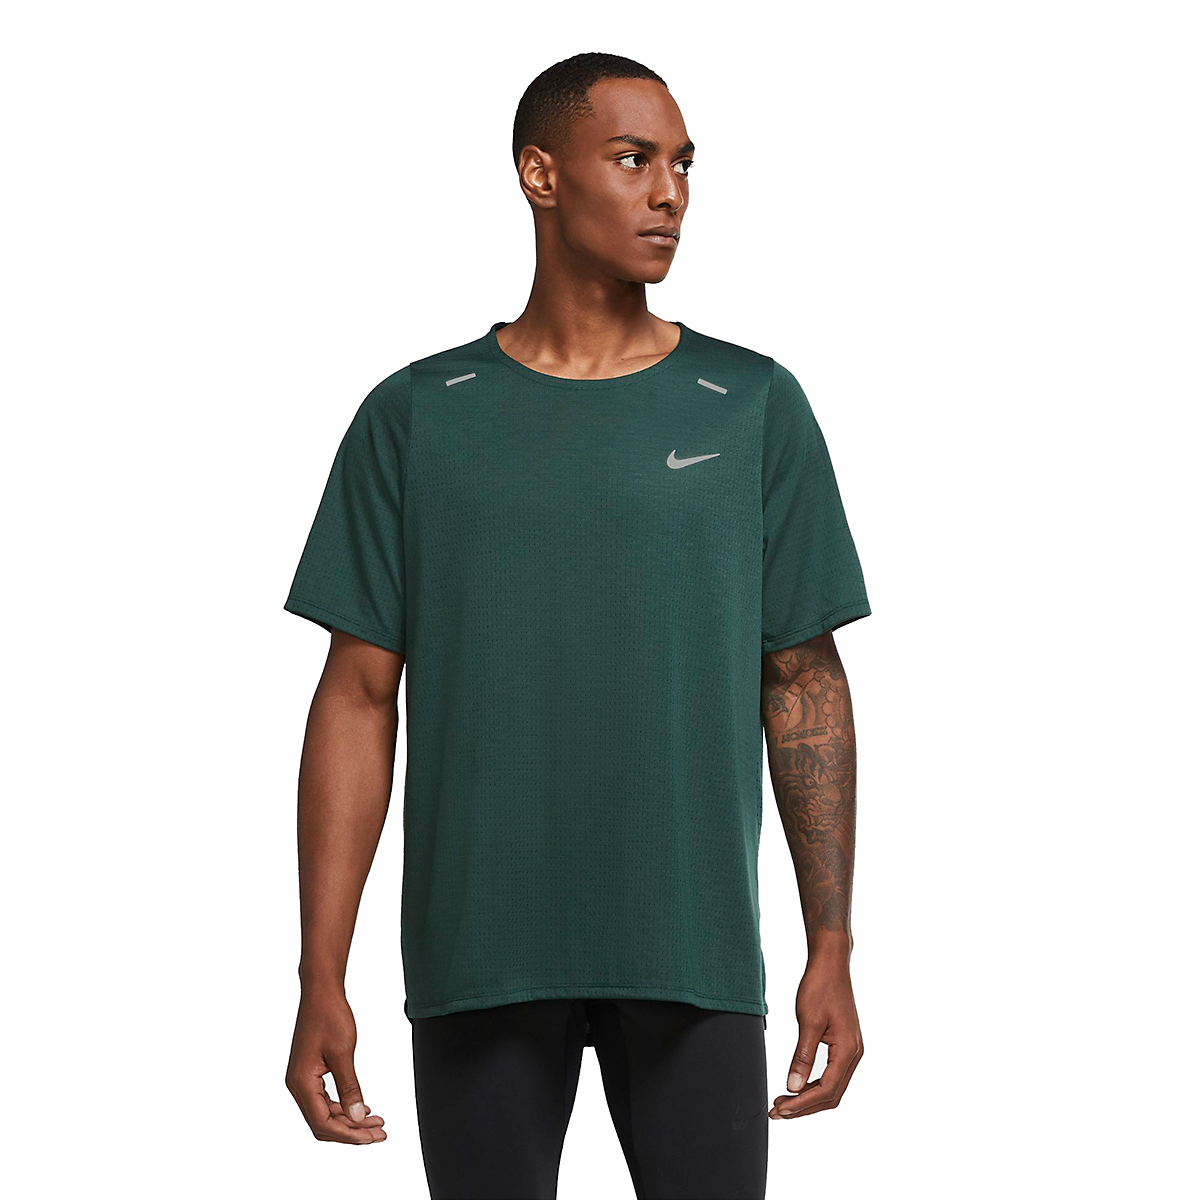 Men's Nike Rise 365 Running Top - Color: Pro Green - Size: S, Pro Green, large, image 3